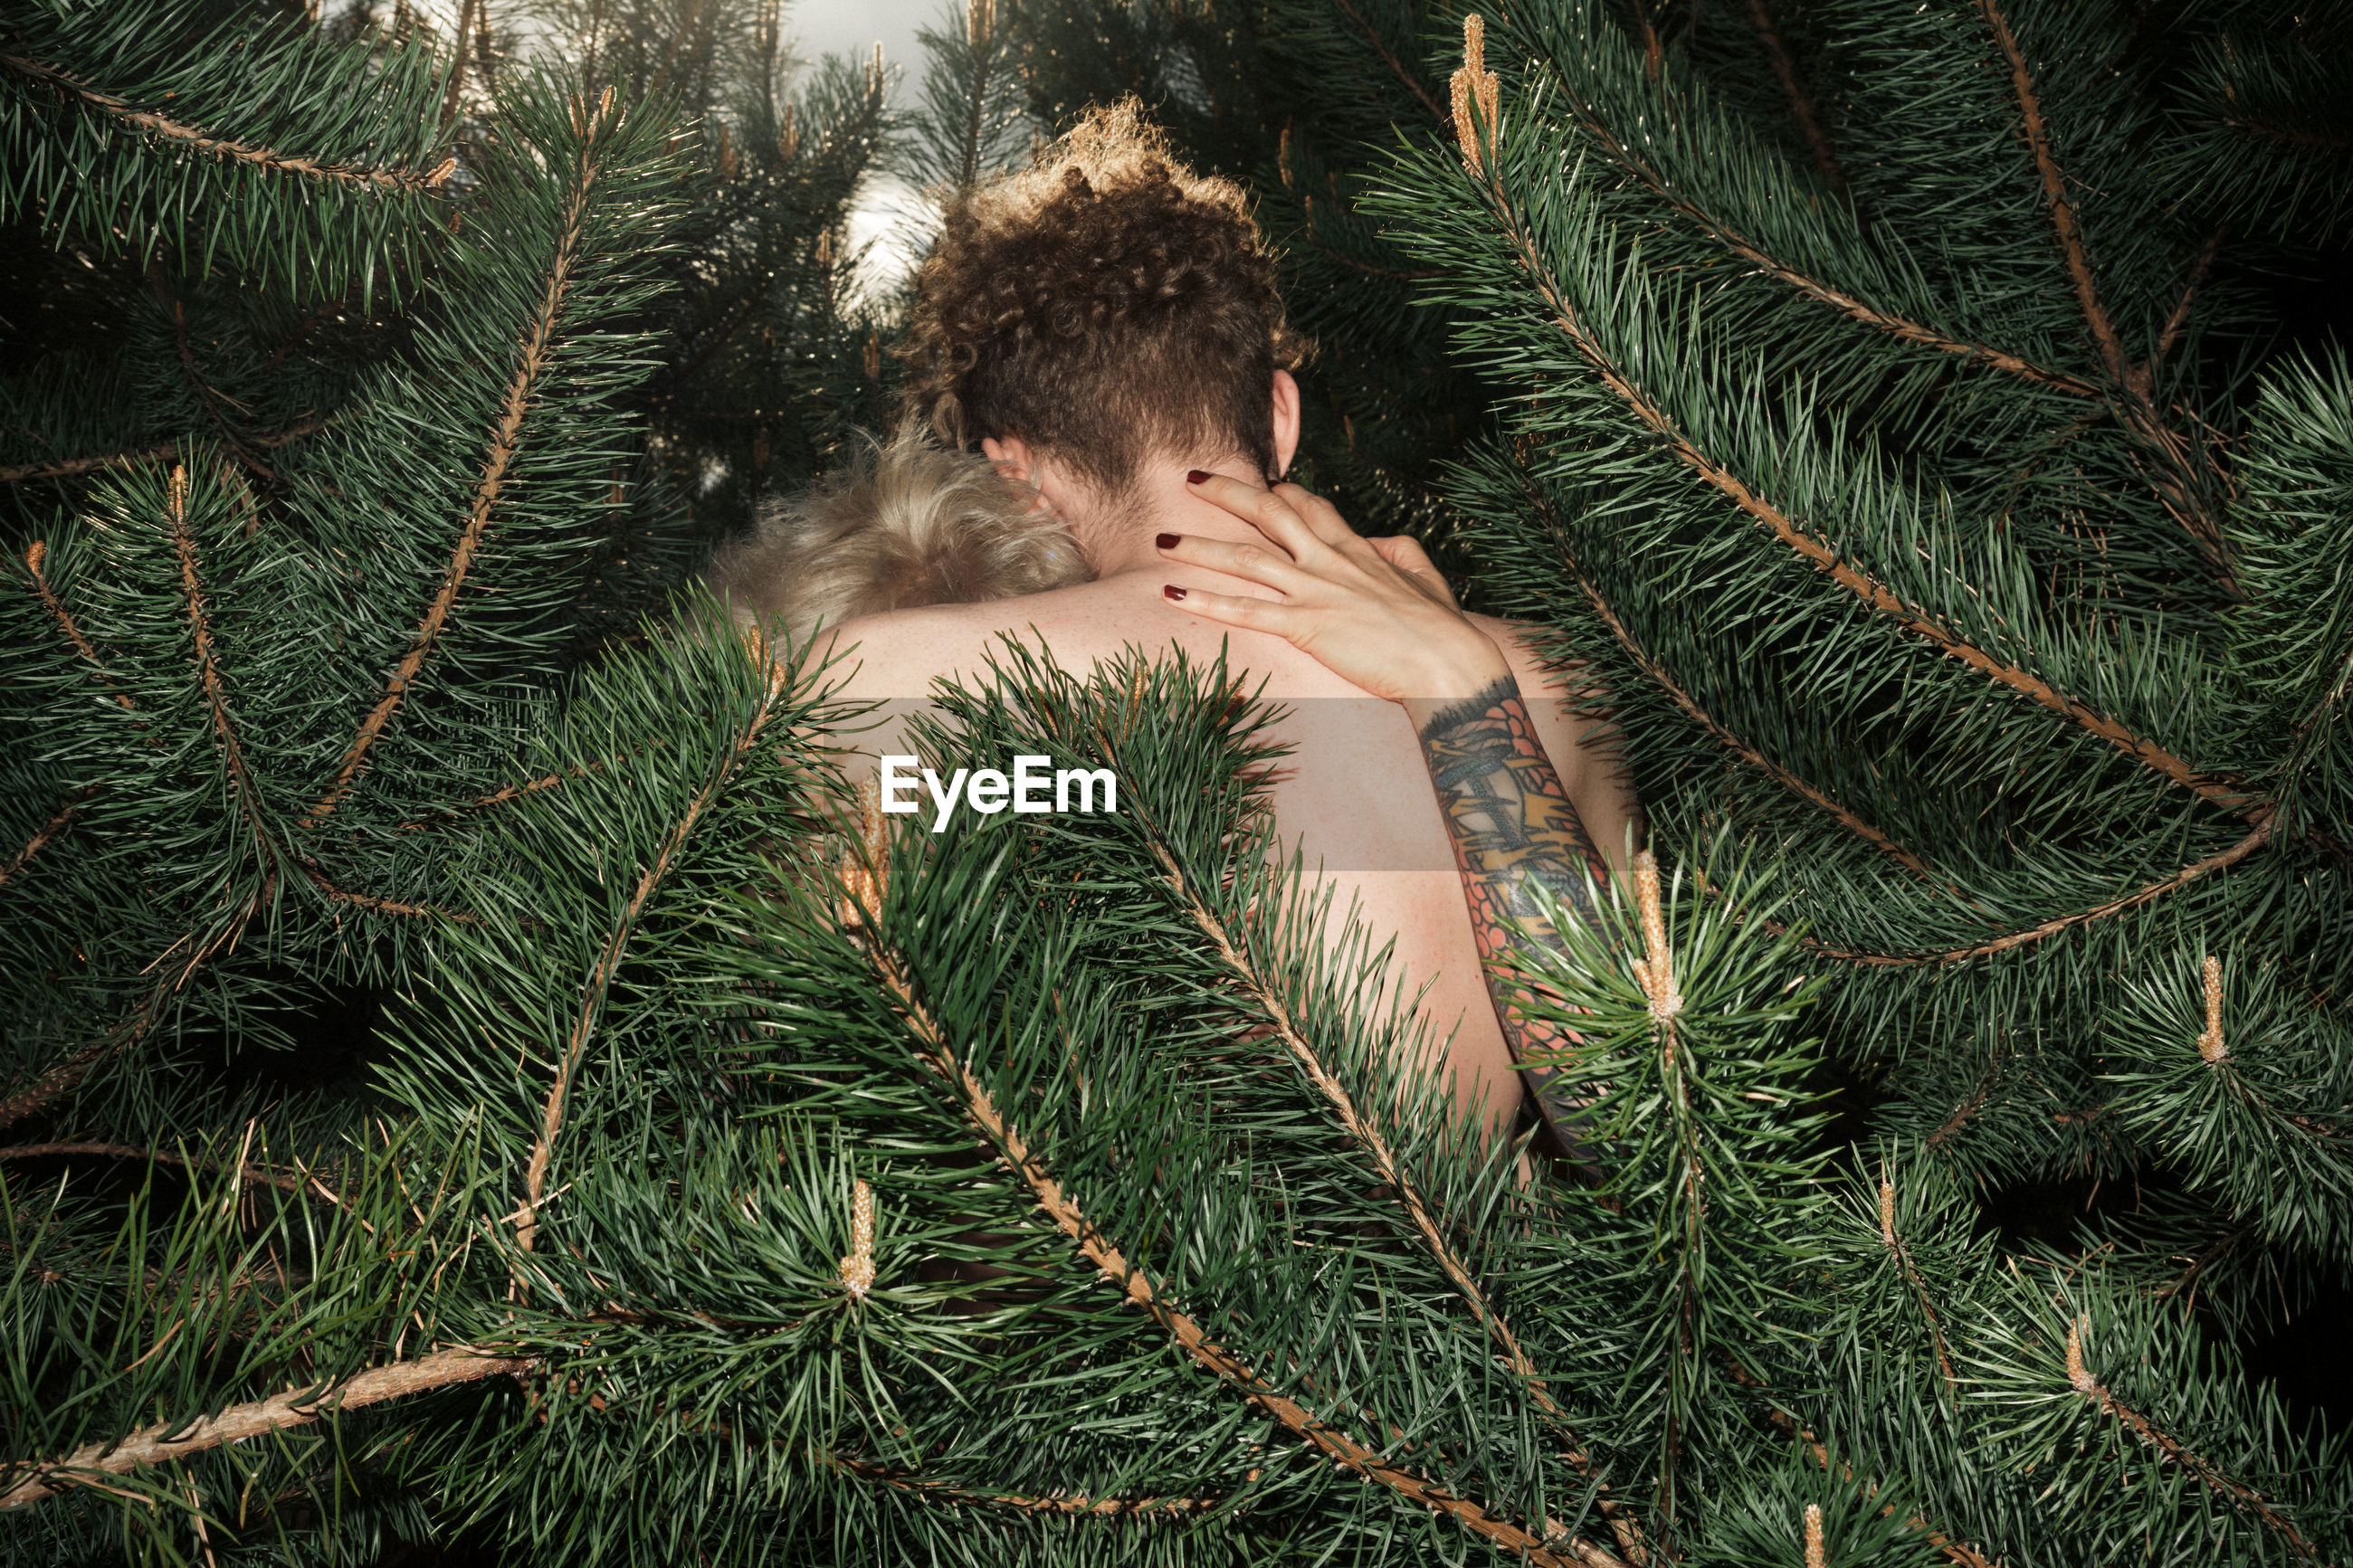 Couple embracing amidst pine trees in forest